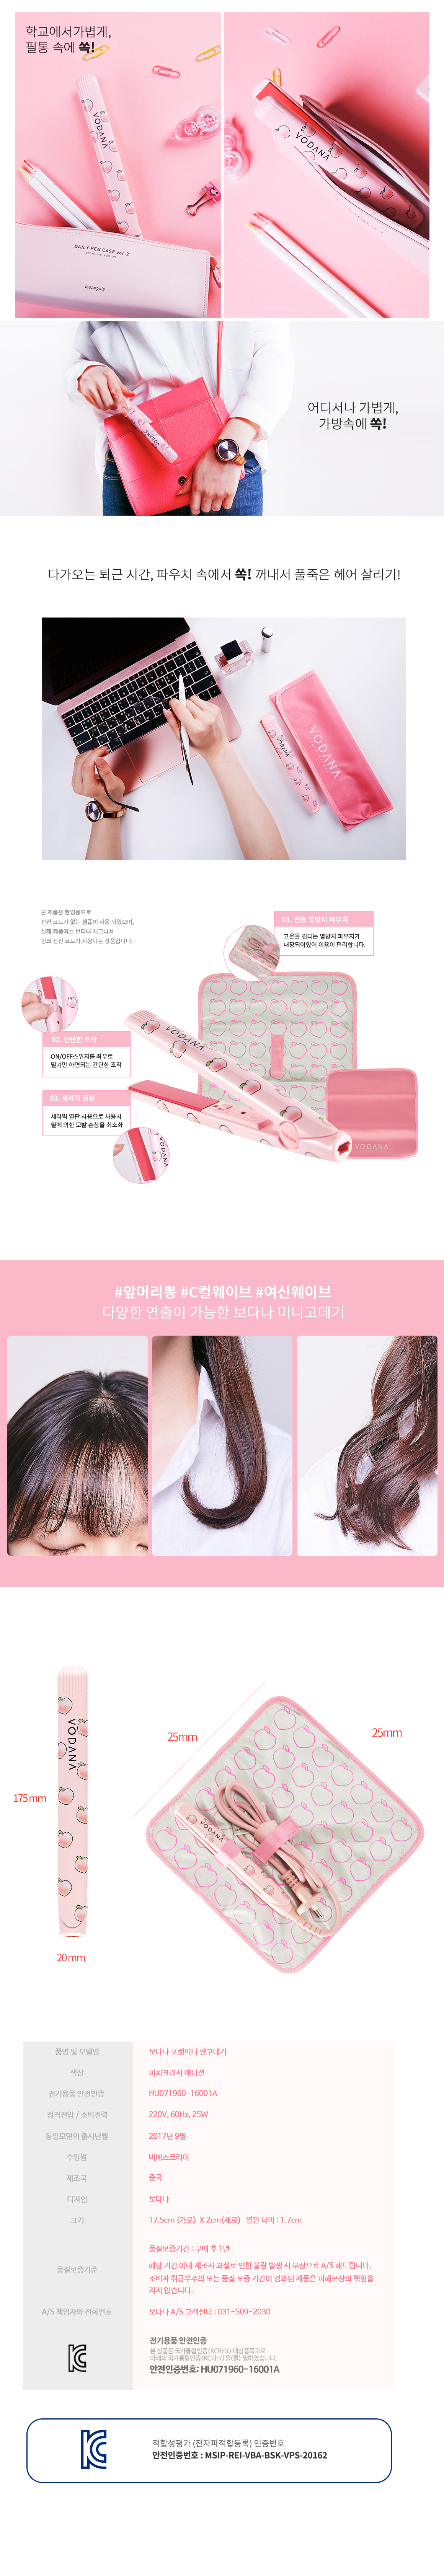 vodana-peachcrush-pocket-mini-flat-iron-02.jpg